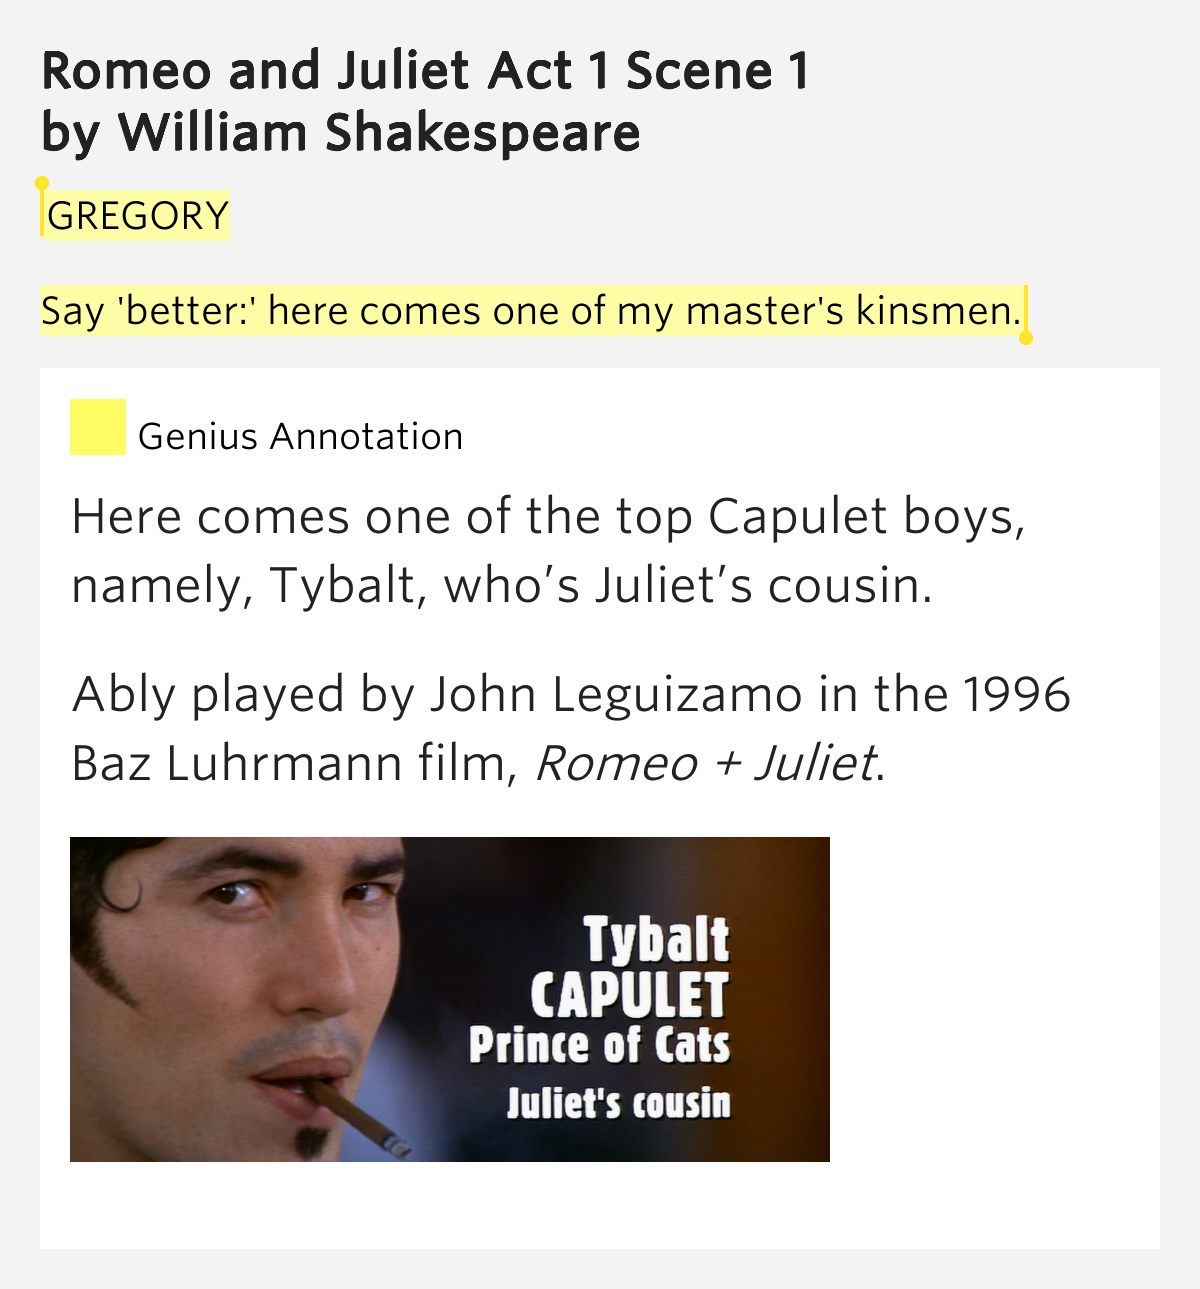 baz lurhmann interpretation of romeo and Analysis of baz luhrmann's use of cinematic devices in the opening scenes of william shakespeare's romeo and juliet baz luhrmann's 1997 film version of romeo and juliet is updated to the modern age while still retaining the original dialogue.